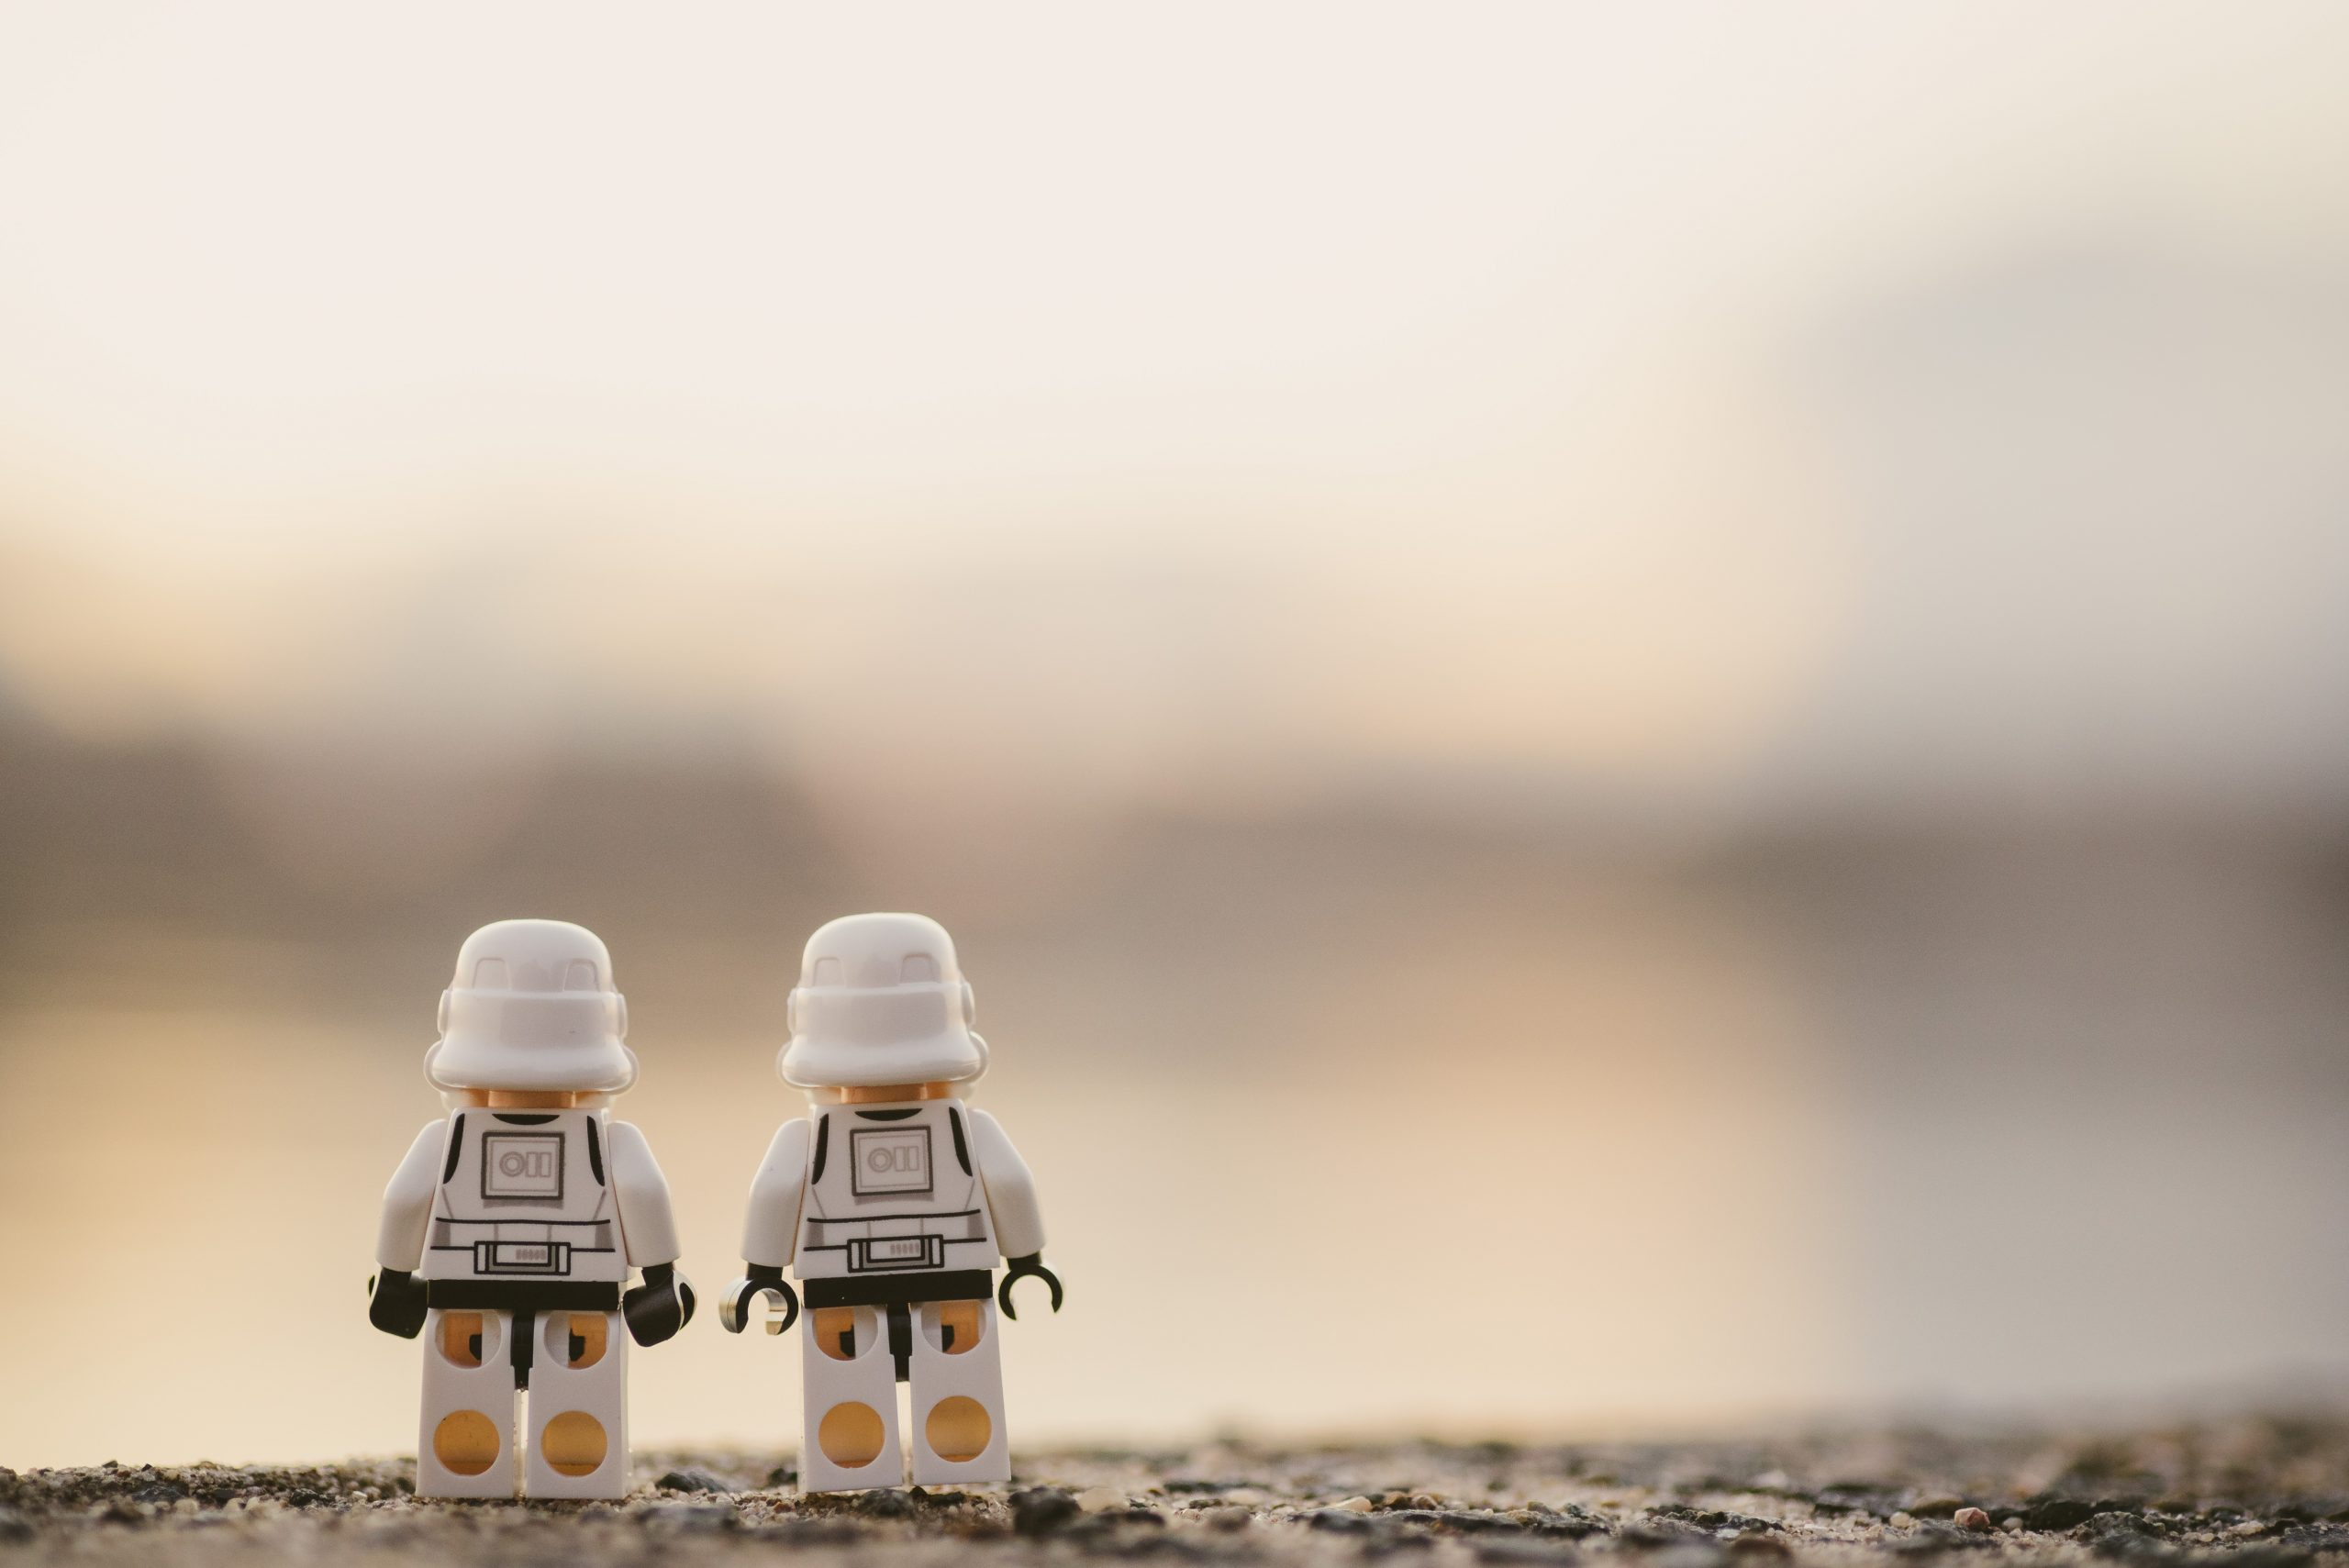 Two lego characters representing a client and creative agency